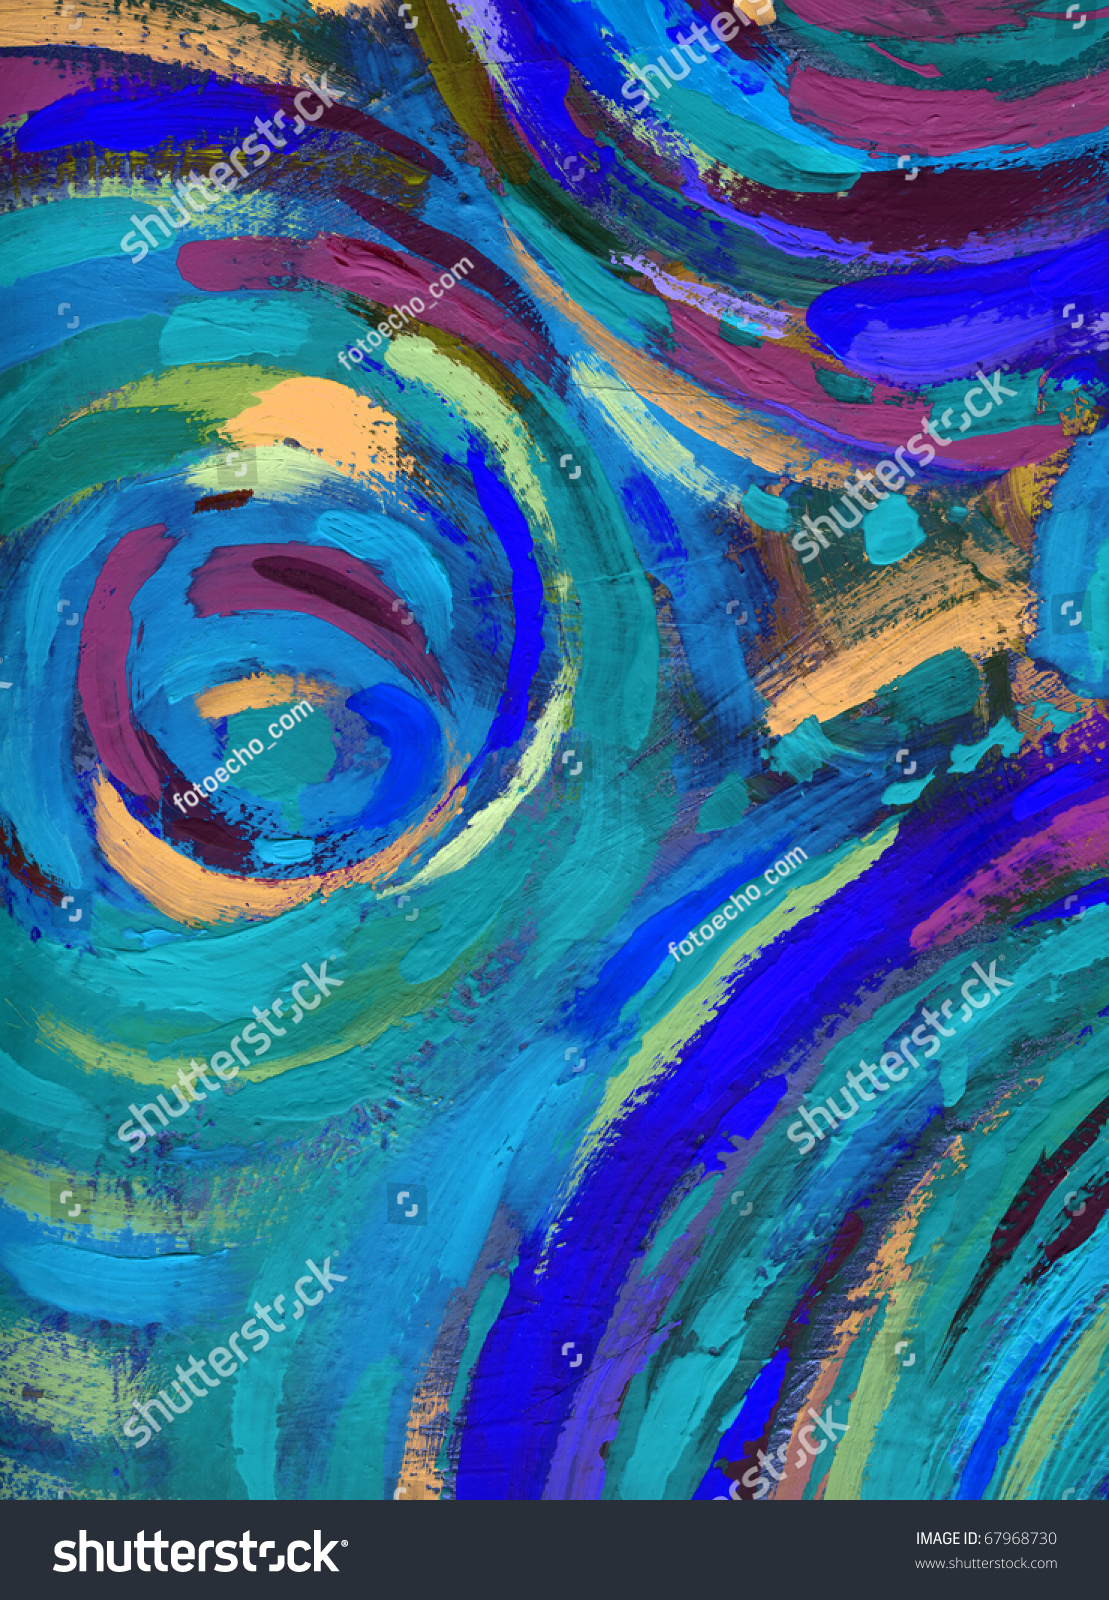 Acrylic painting abstract texture background stock for Textured acrylic abstract paintings